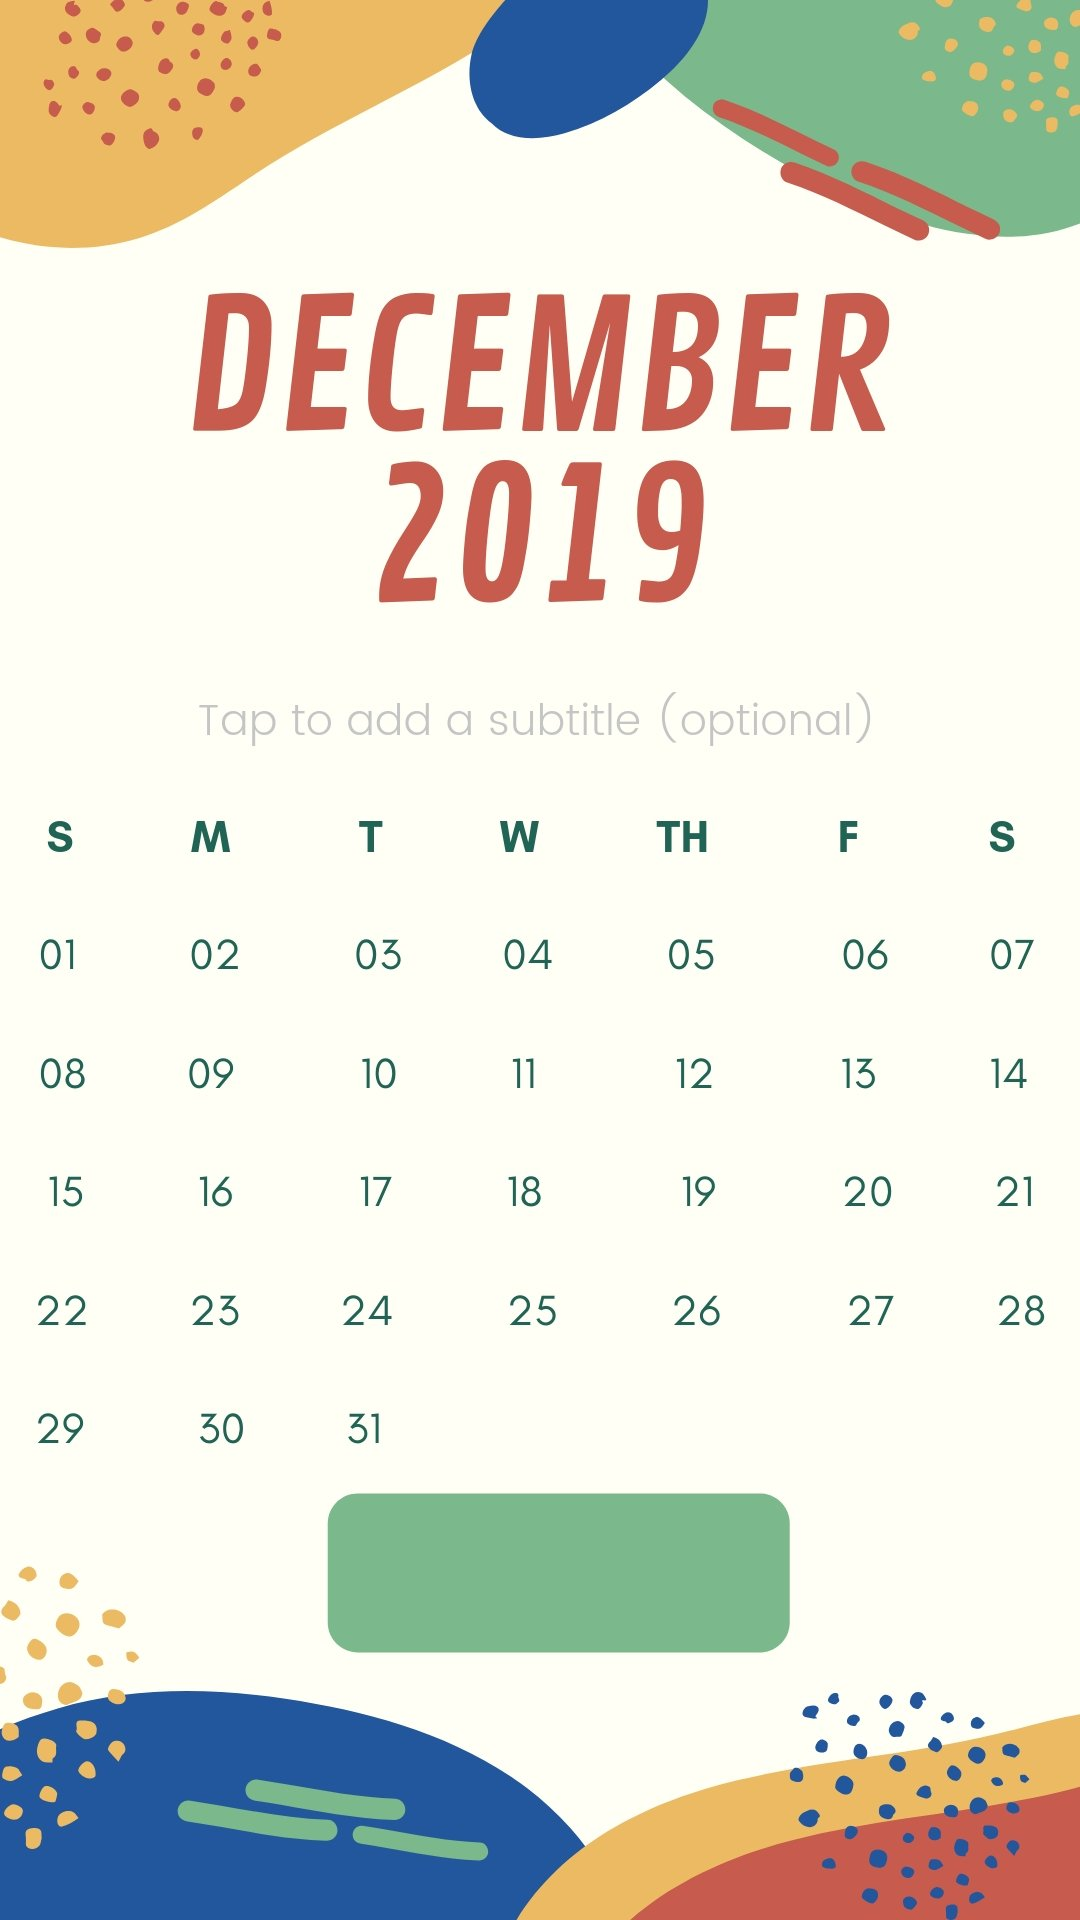 December 2019 Mobile Background Calendar